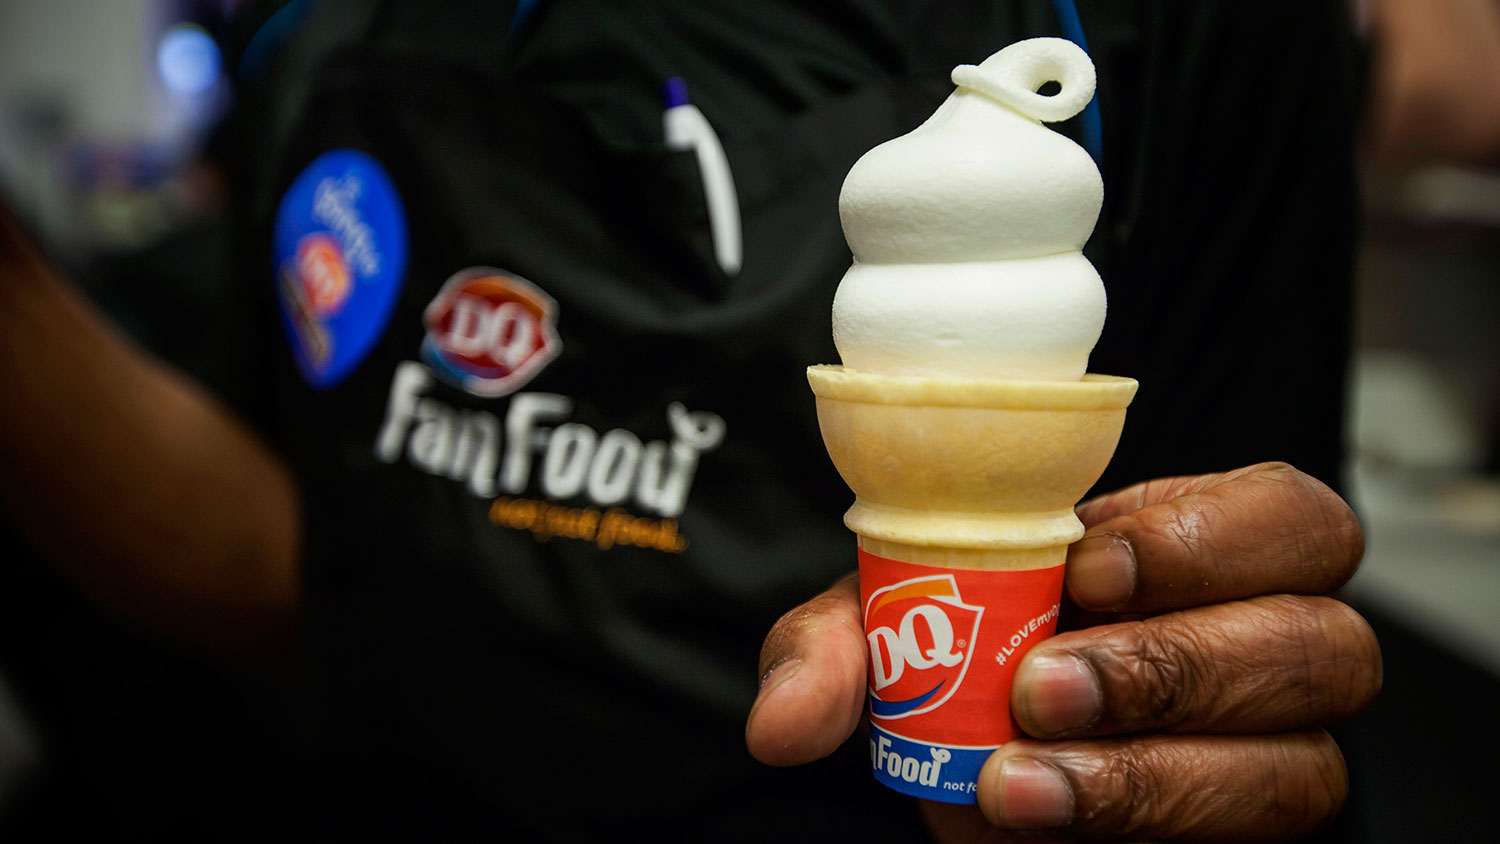 Dairy Queens Across the Country Will Be Giving Away Free Cones on Monday — Here's Why